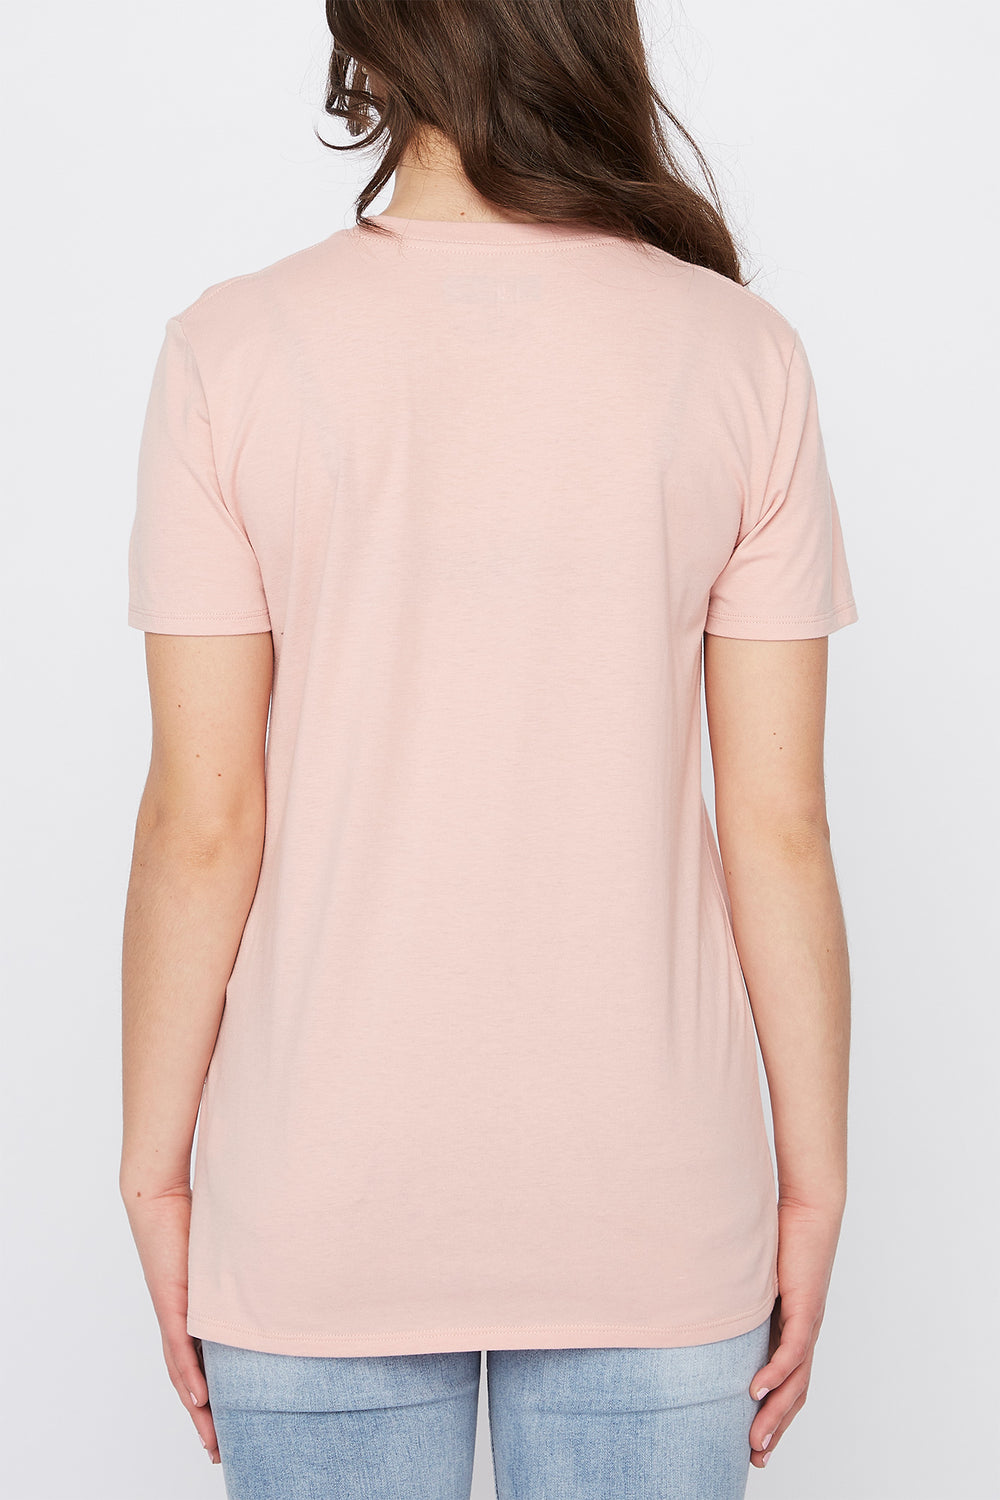 T-Shirt Tournesol Zoo York Femme Rose poudre